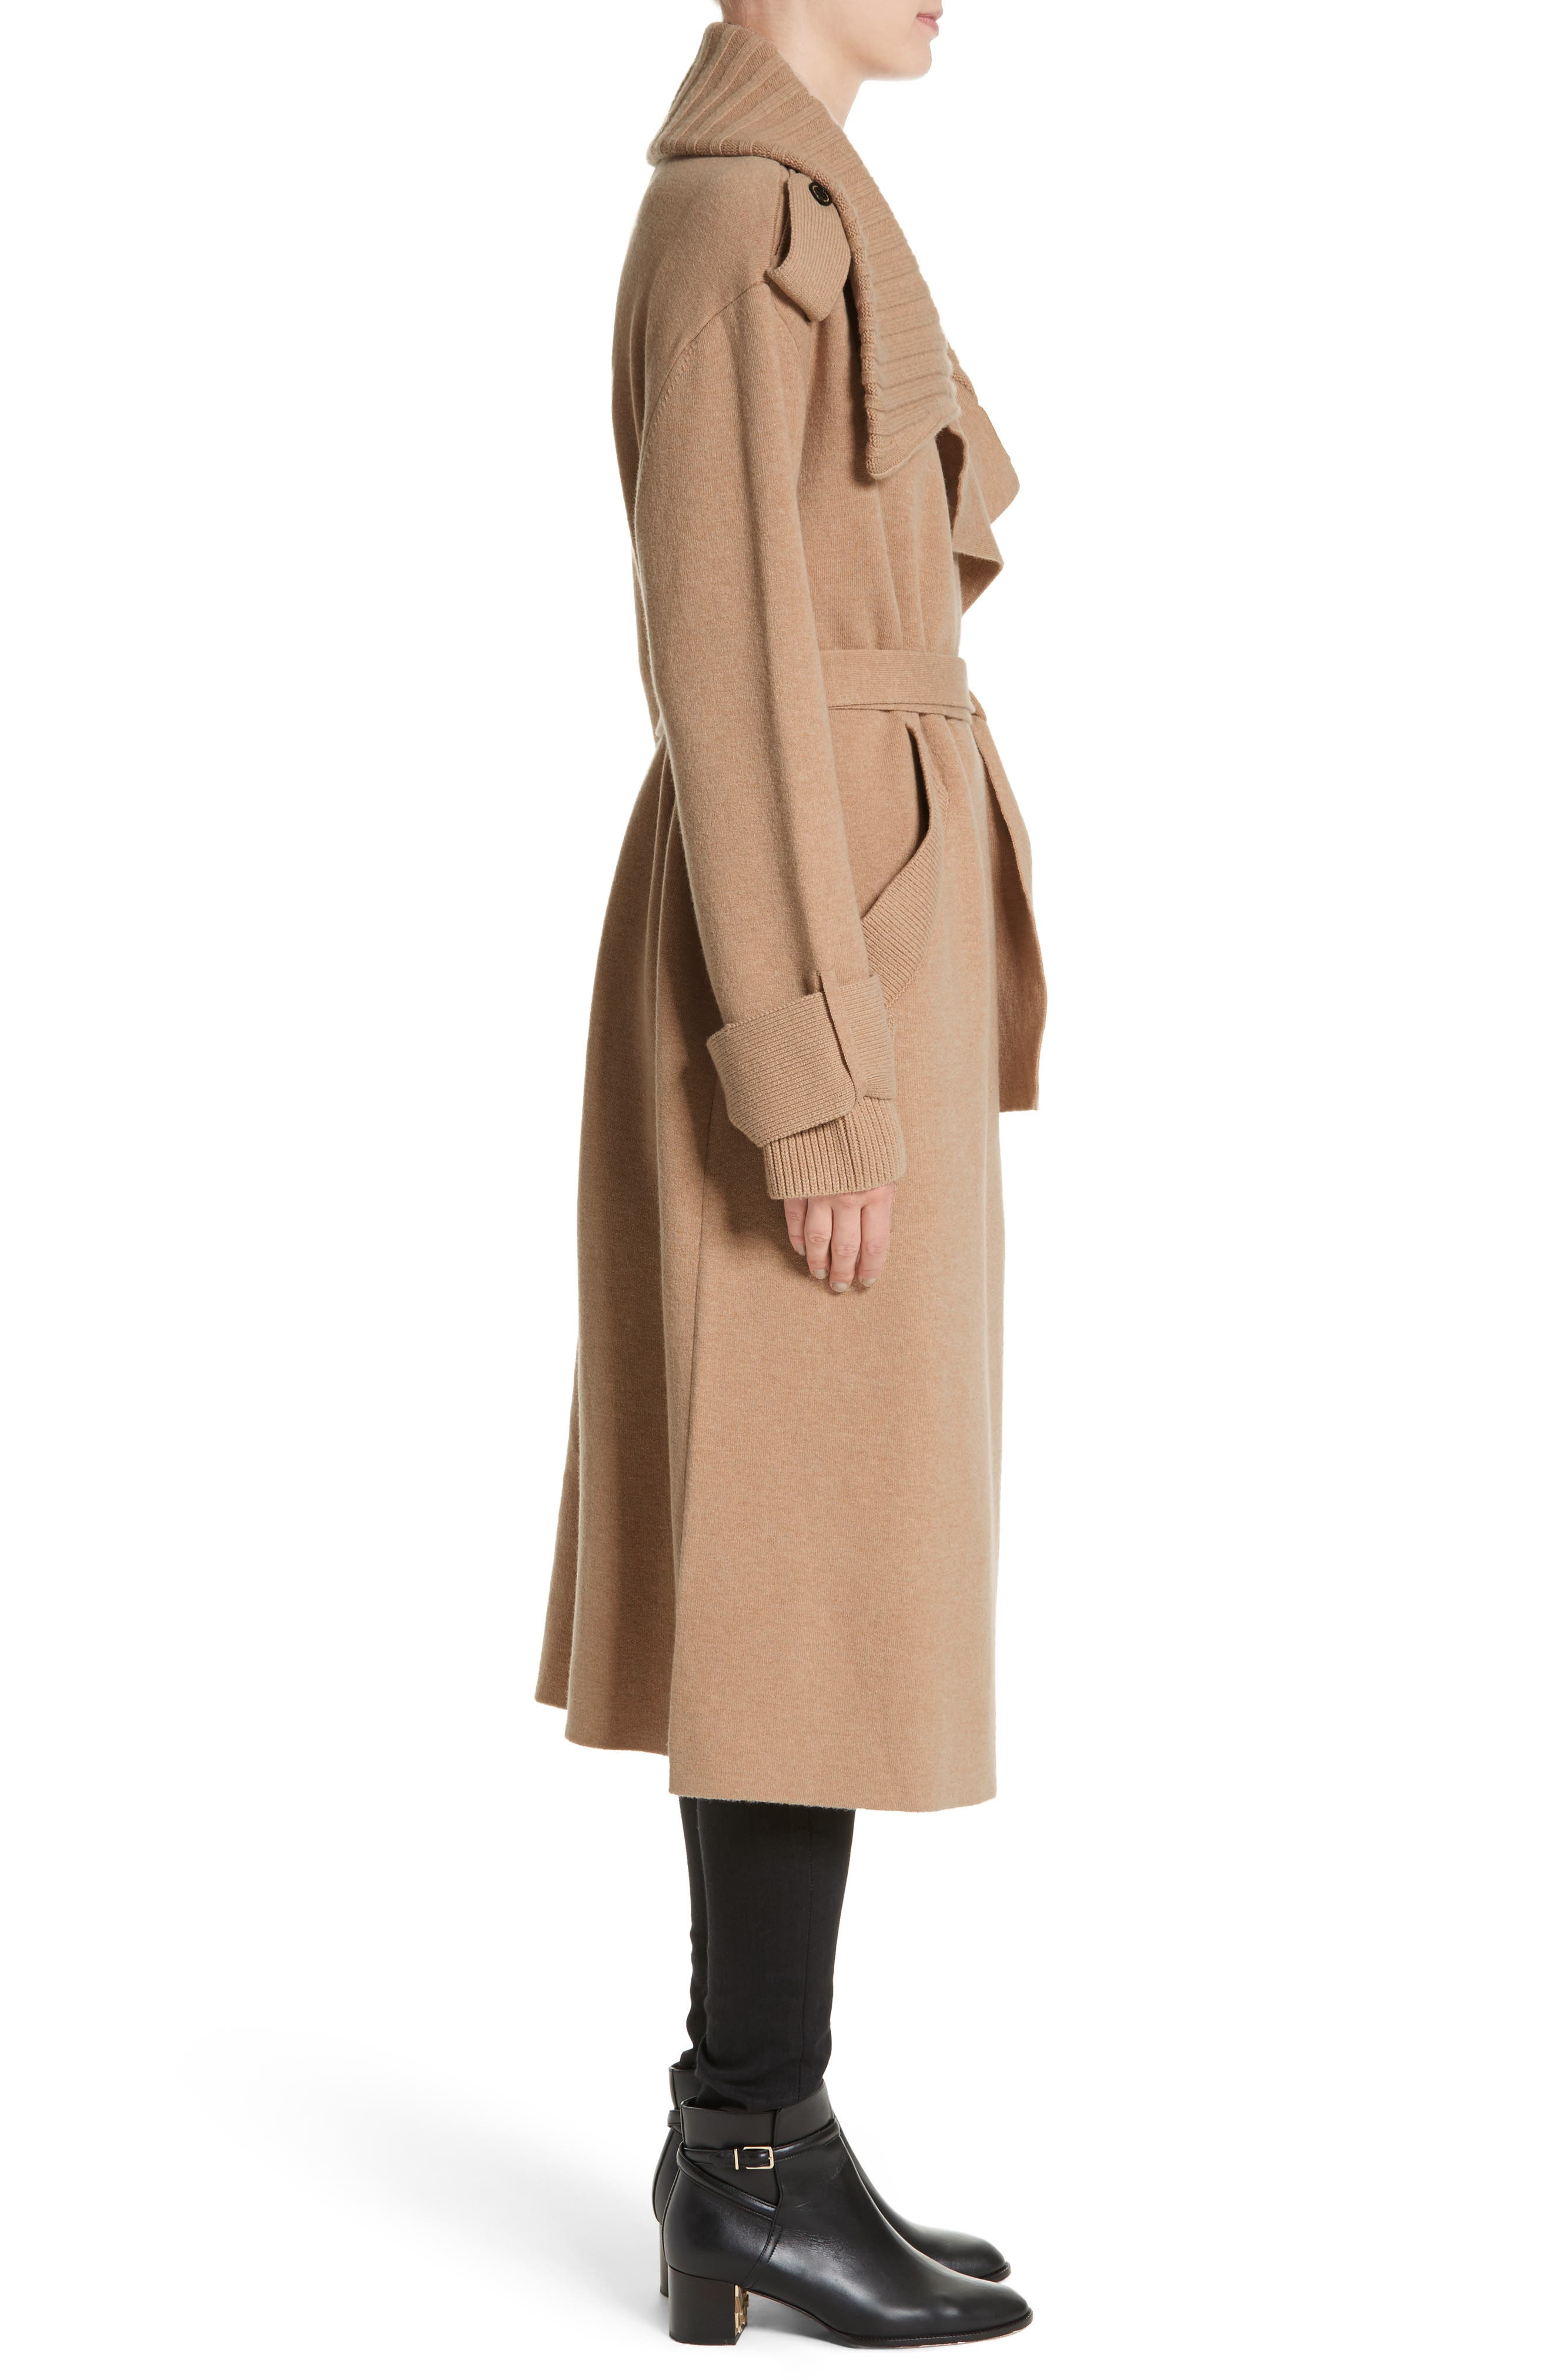 BURBERRY, Piota Wool Blend Knit Trench Coat, Alternate thumbnail 4, color, CAMEL